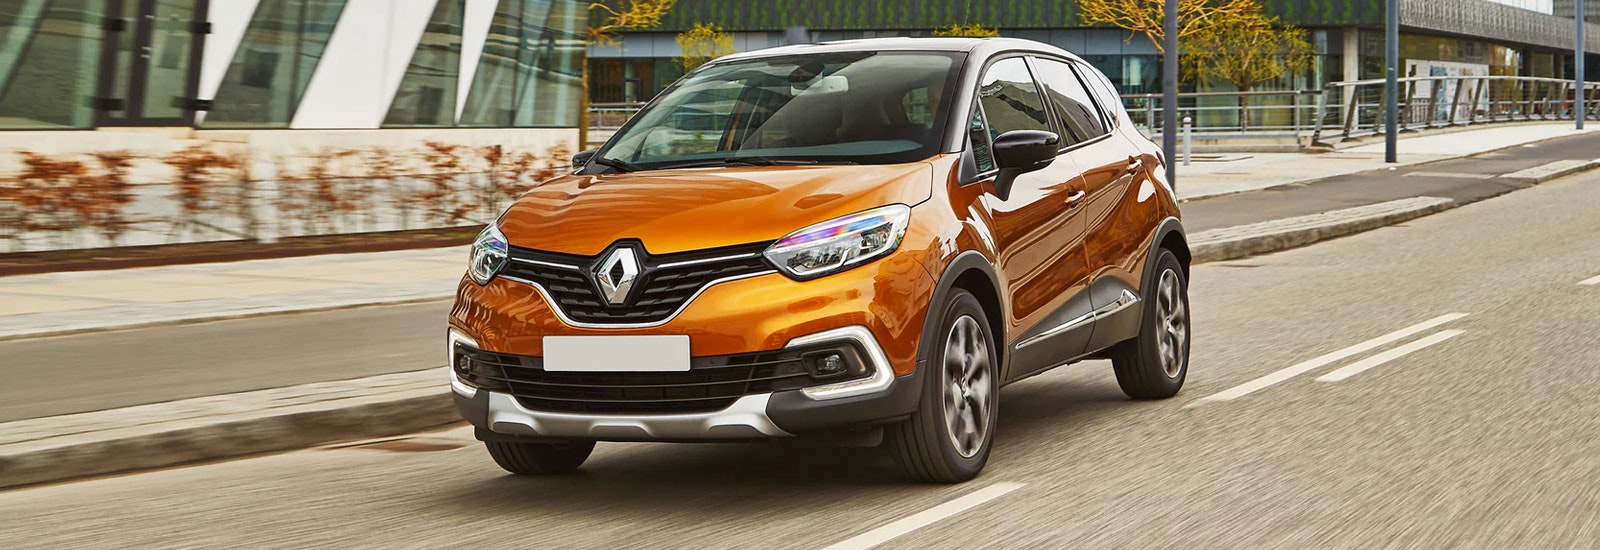 Orange Renault Captur driving, viewed from the front